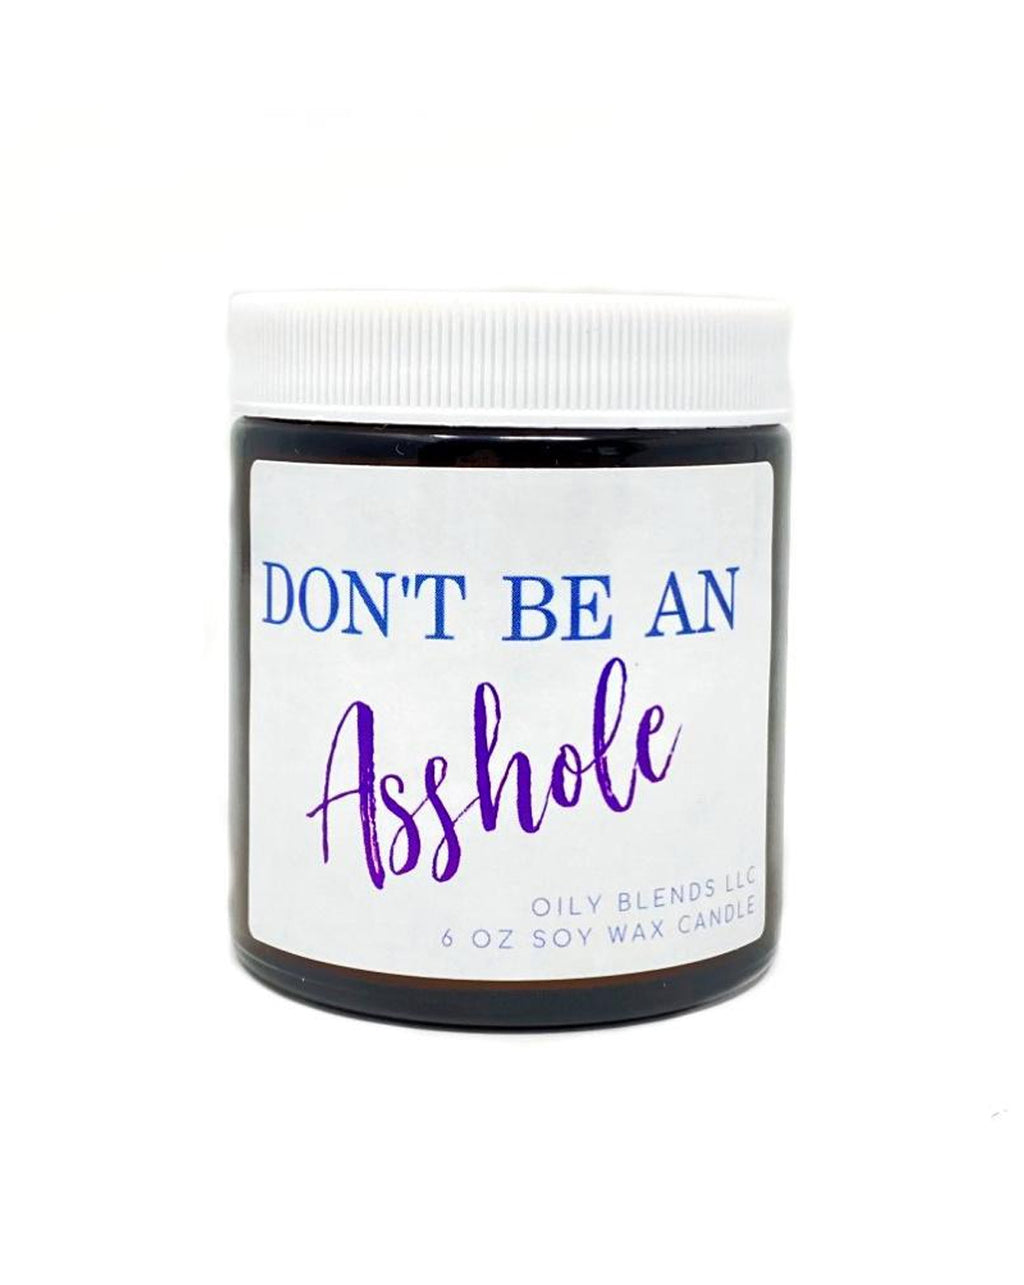 Don't Be an Asshole Soy Wax Candle